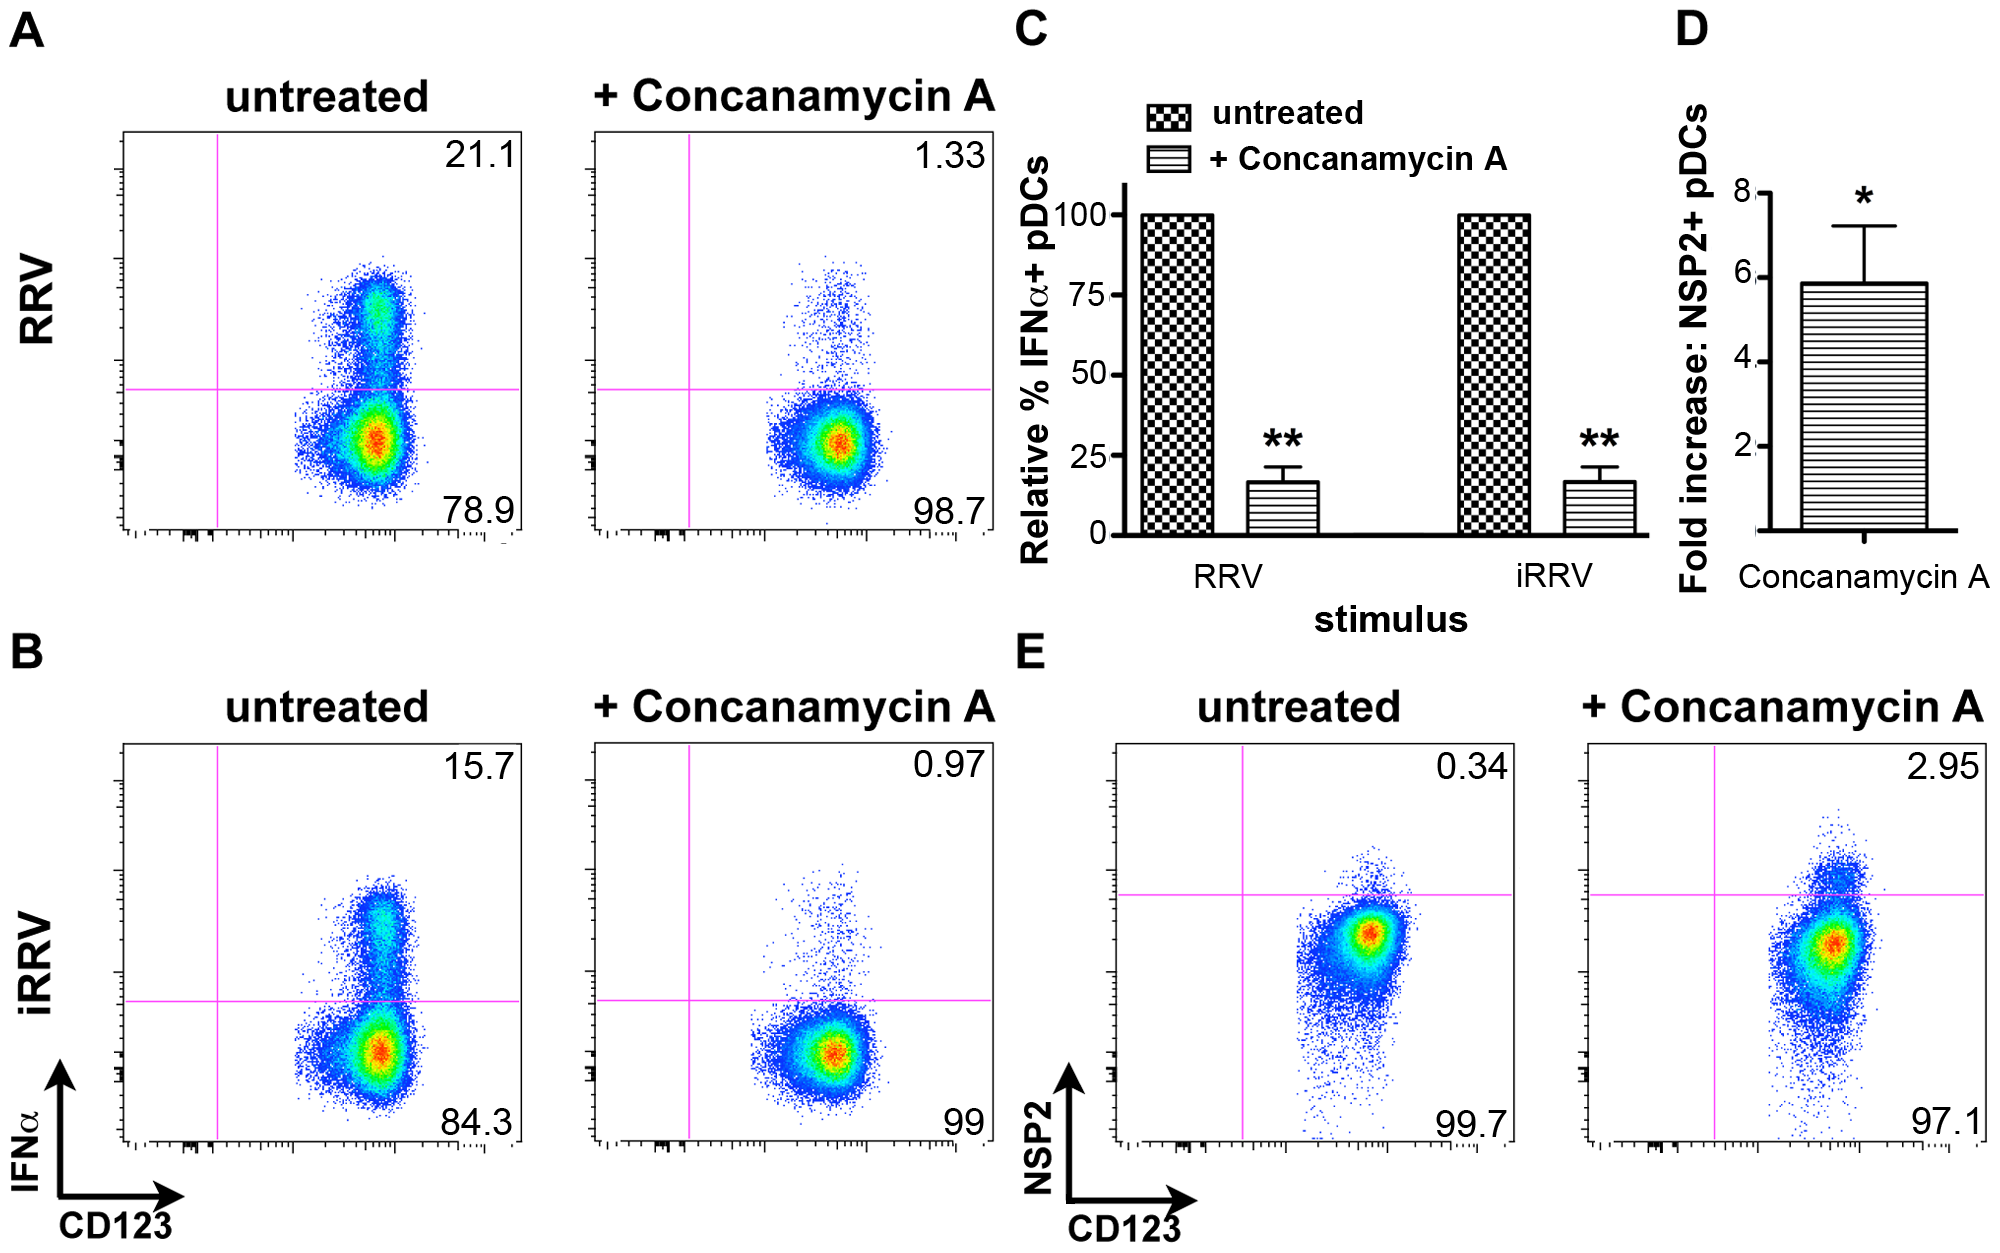 The effects of concanamycin A on IFNα induction and NSP2 expression.